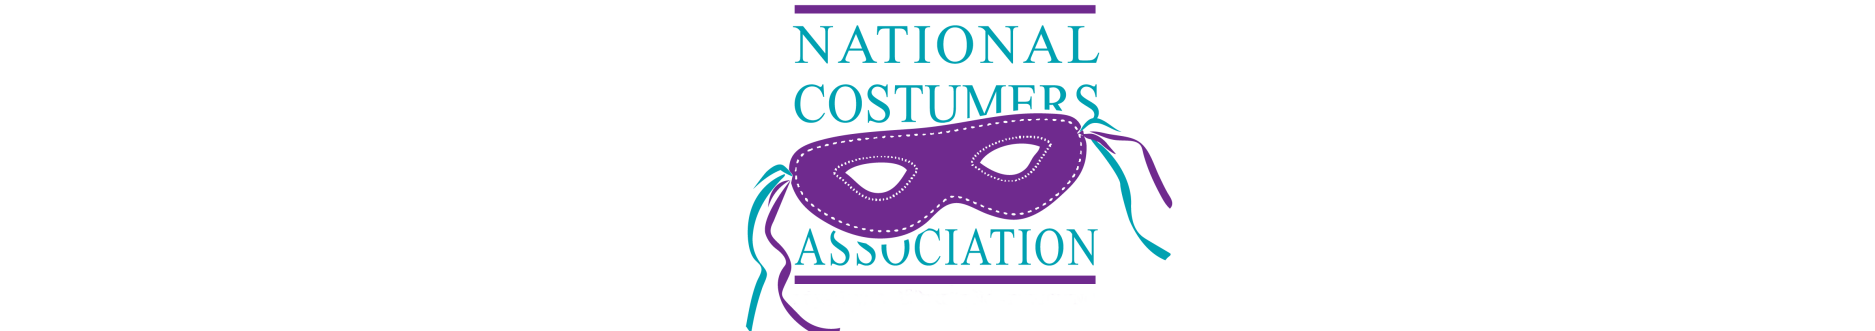 National-costumers-association-logo